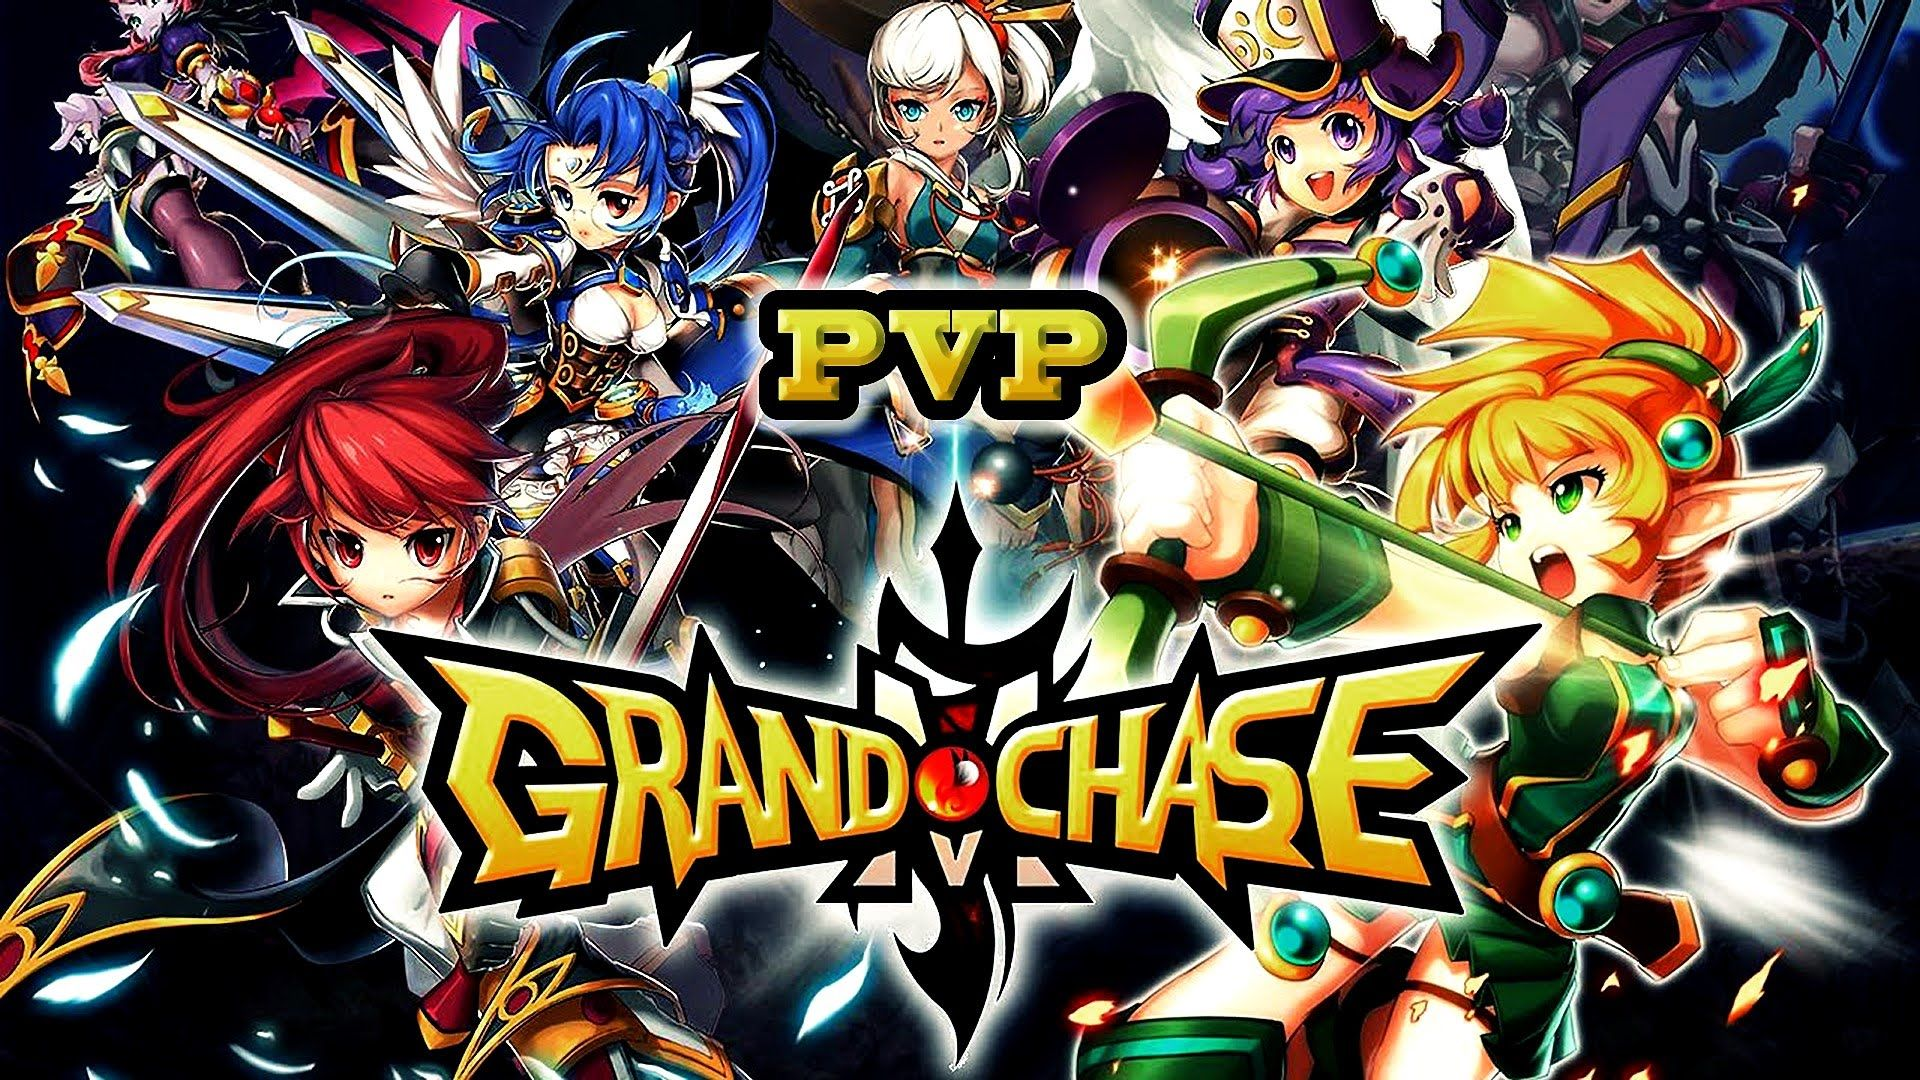 Grand Chase M 4 PVP Game app, Seven knight